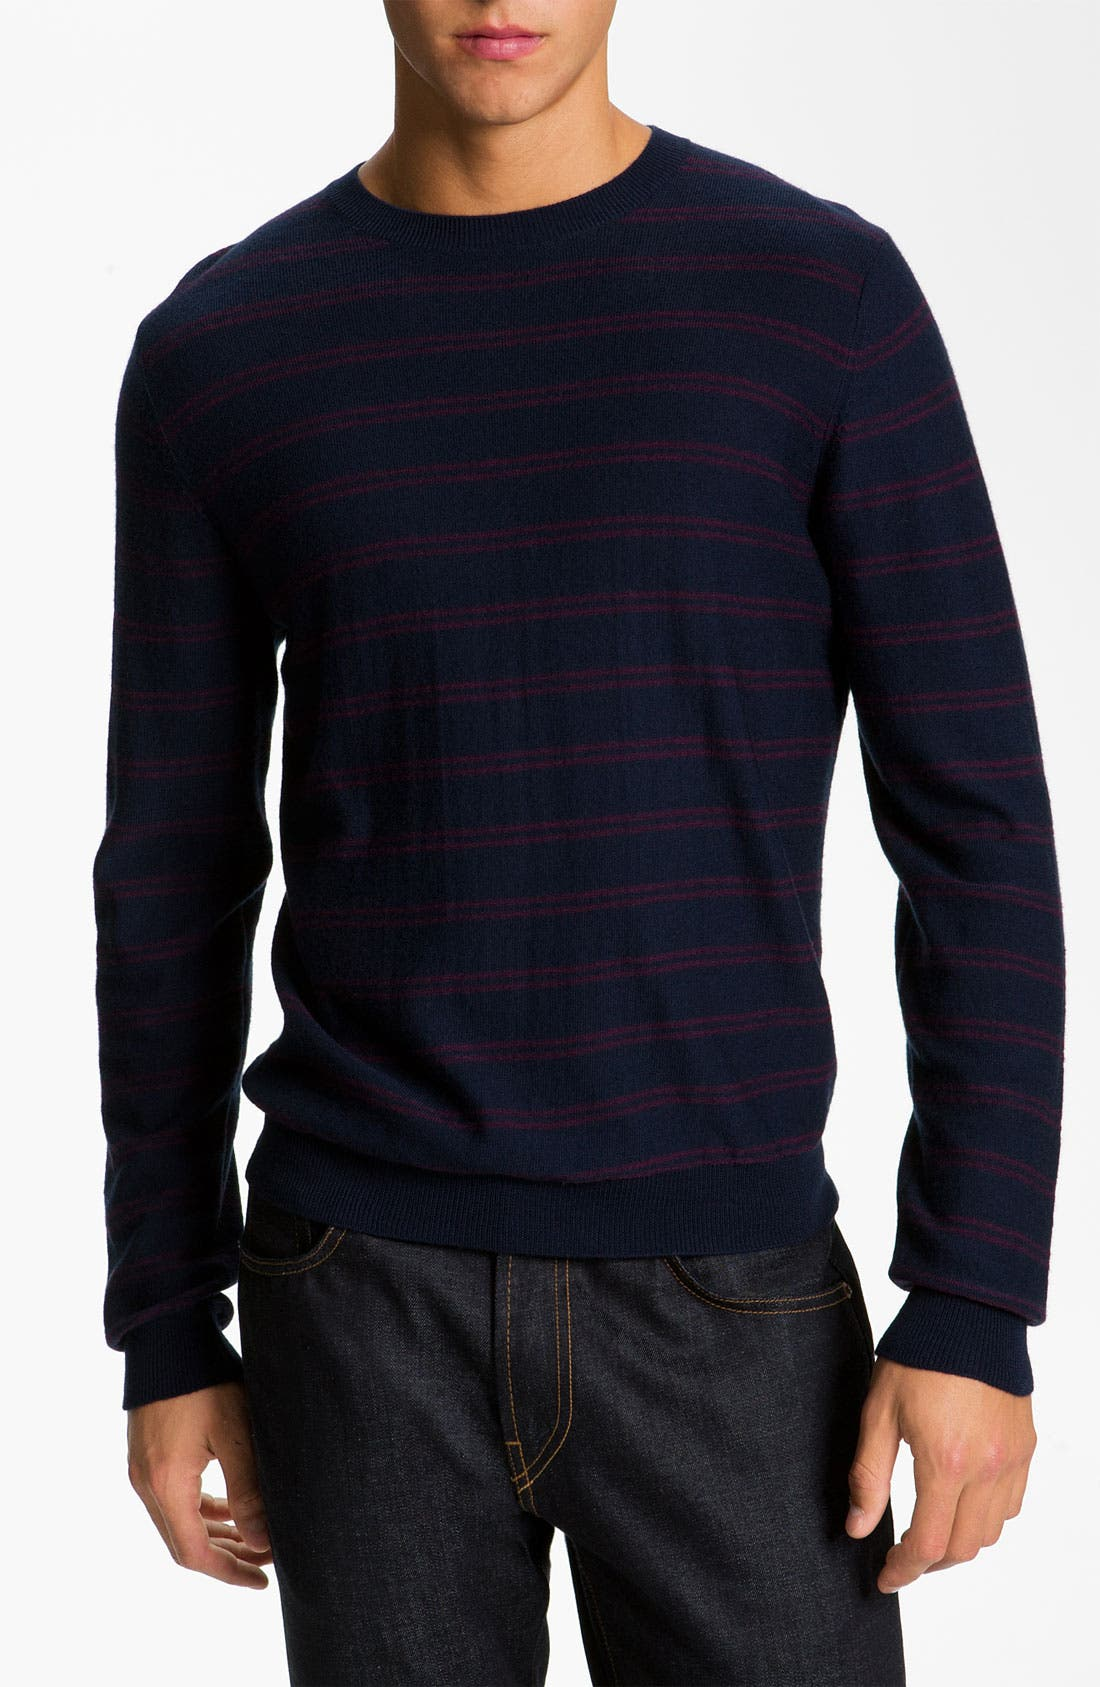 Alternate Image 1 Selected - Cullen89 Merino Wool Sweater